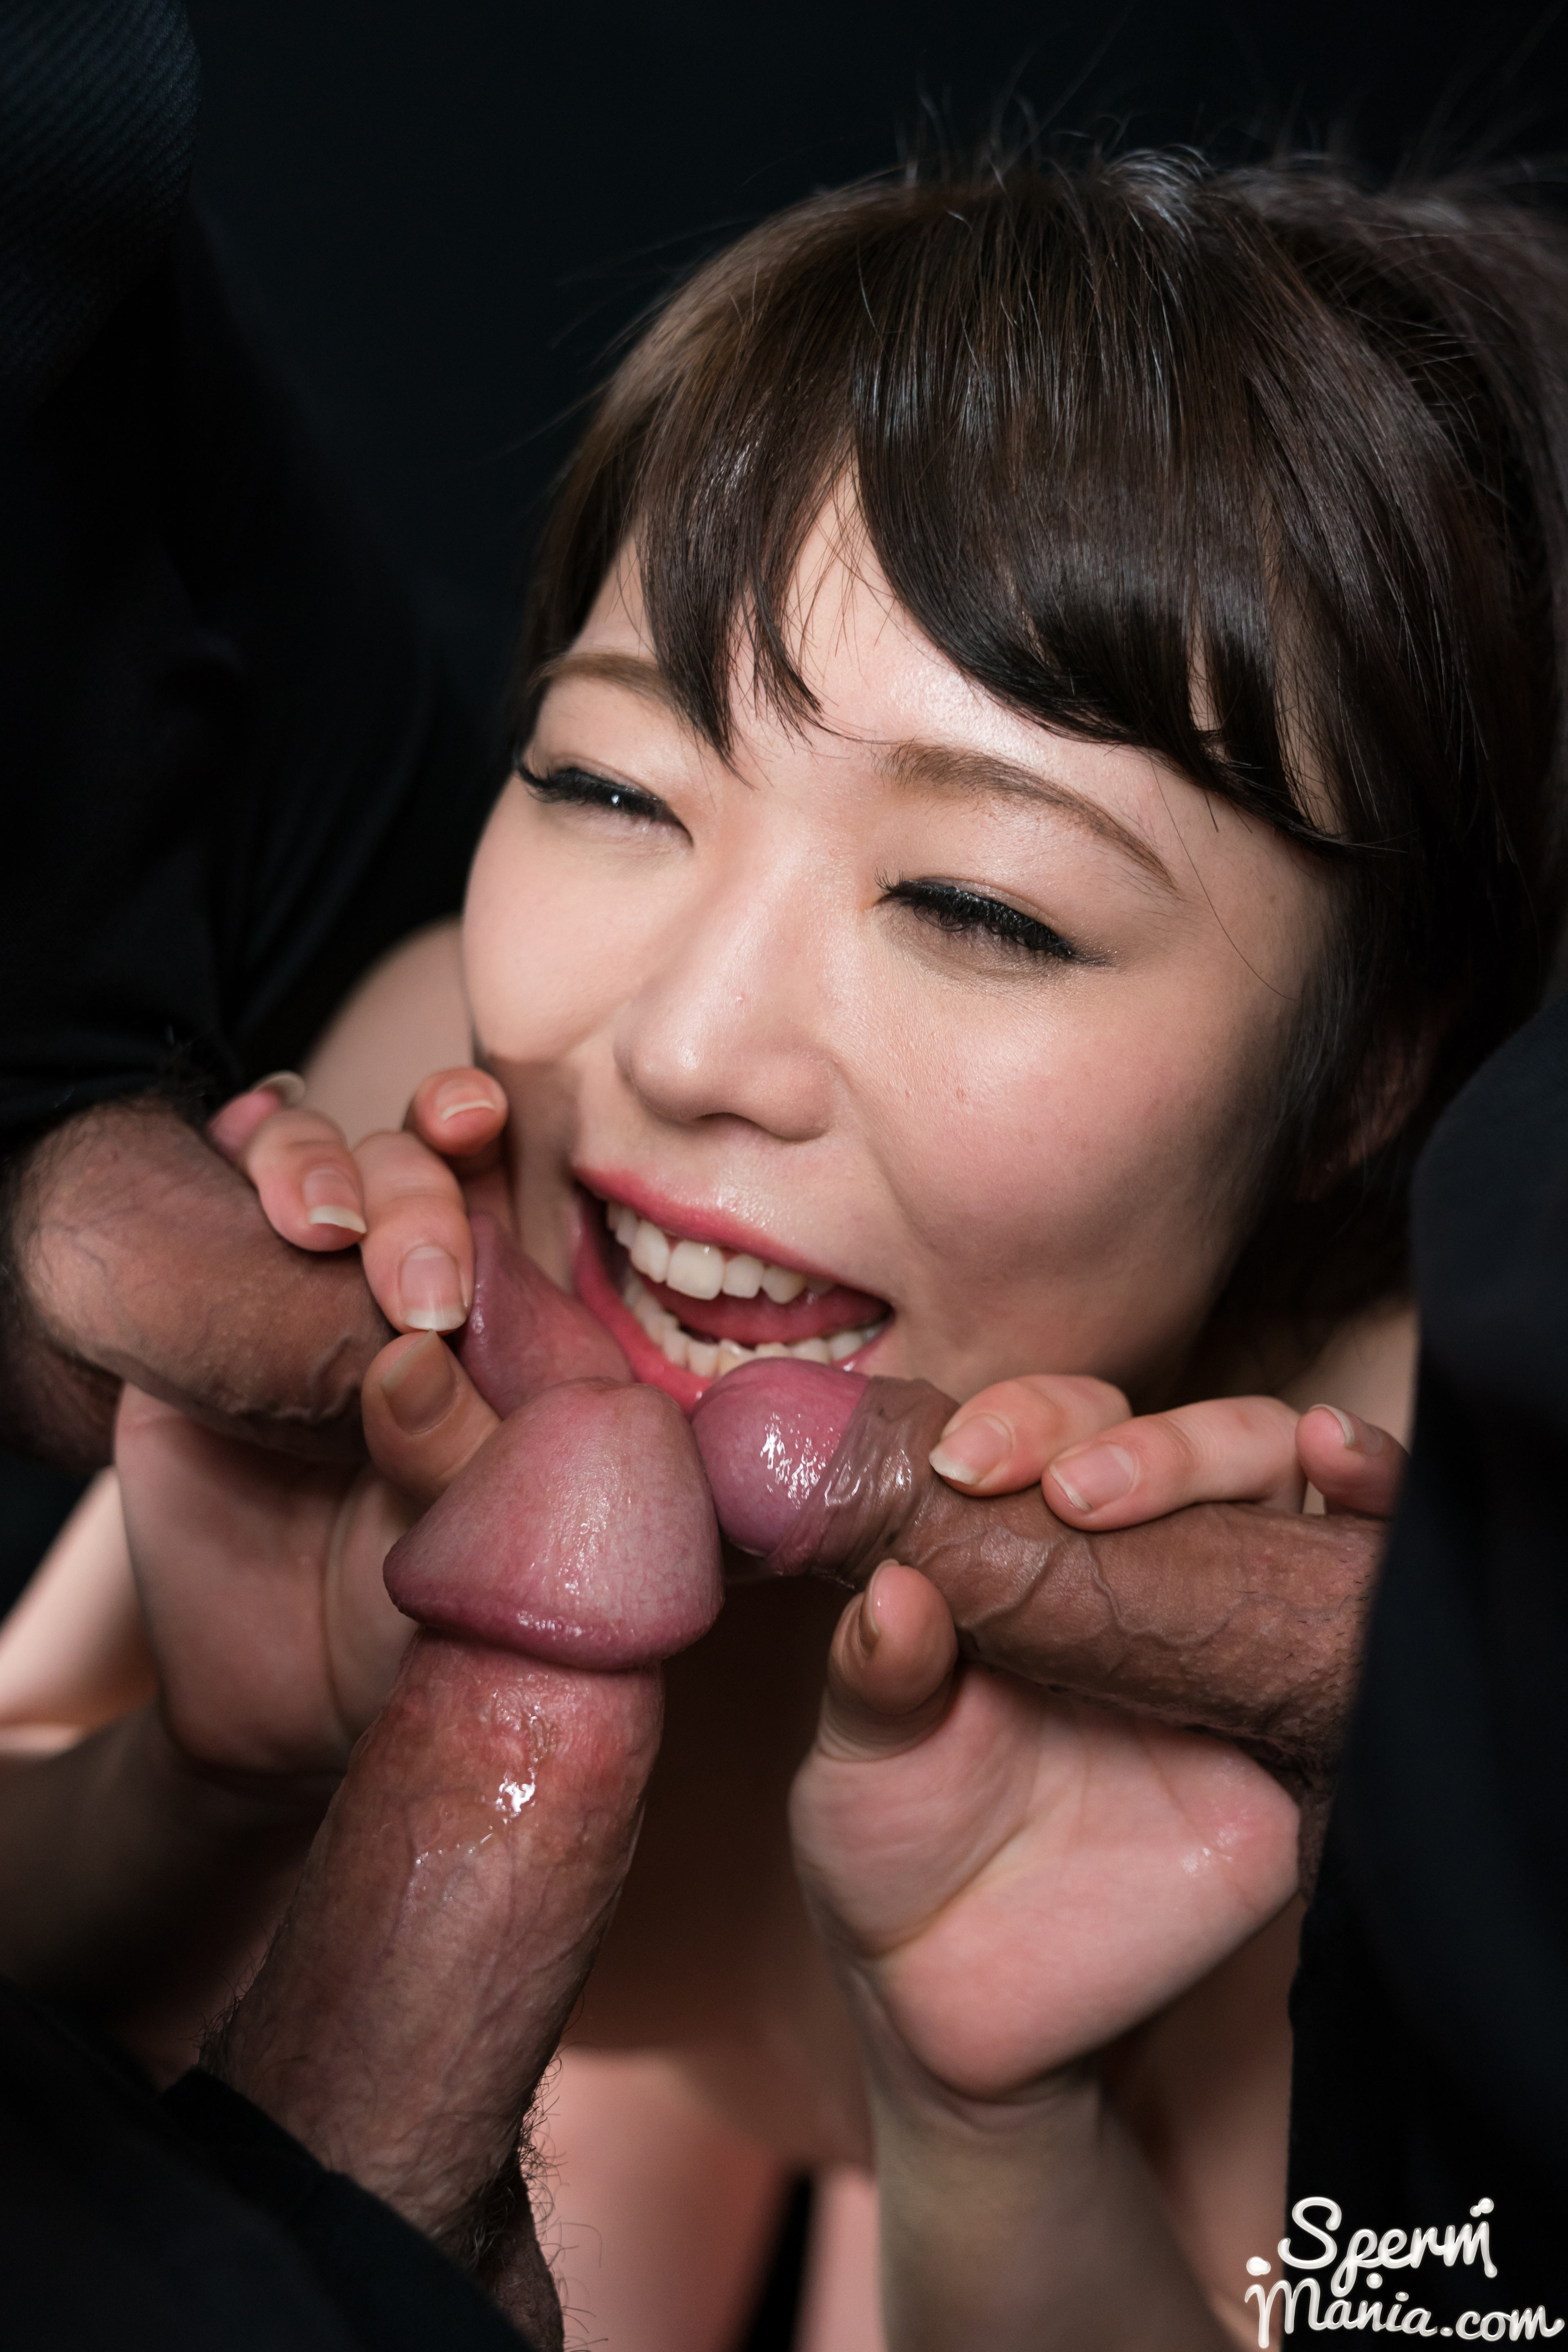 Sloppy blowjob wonder